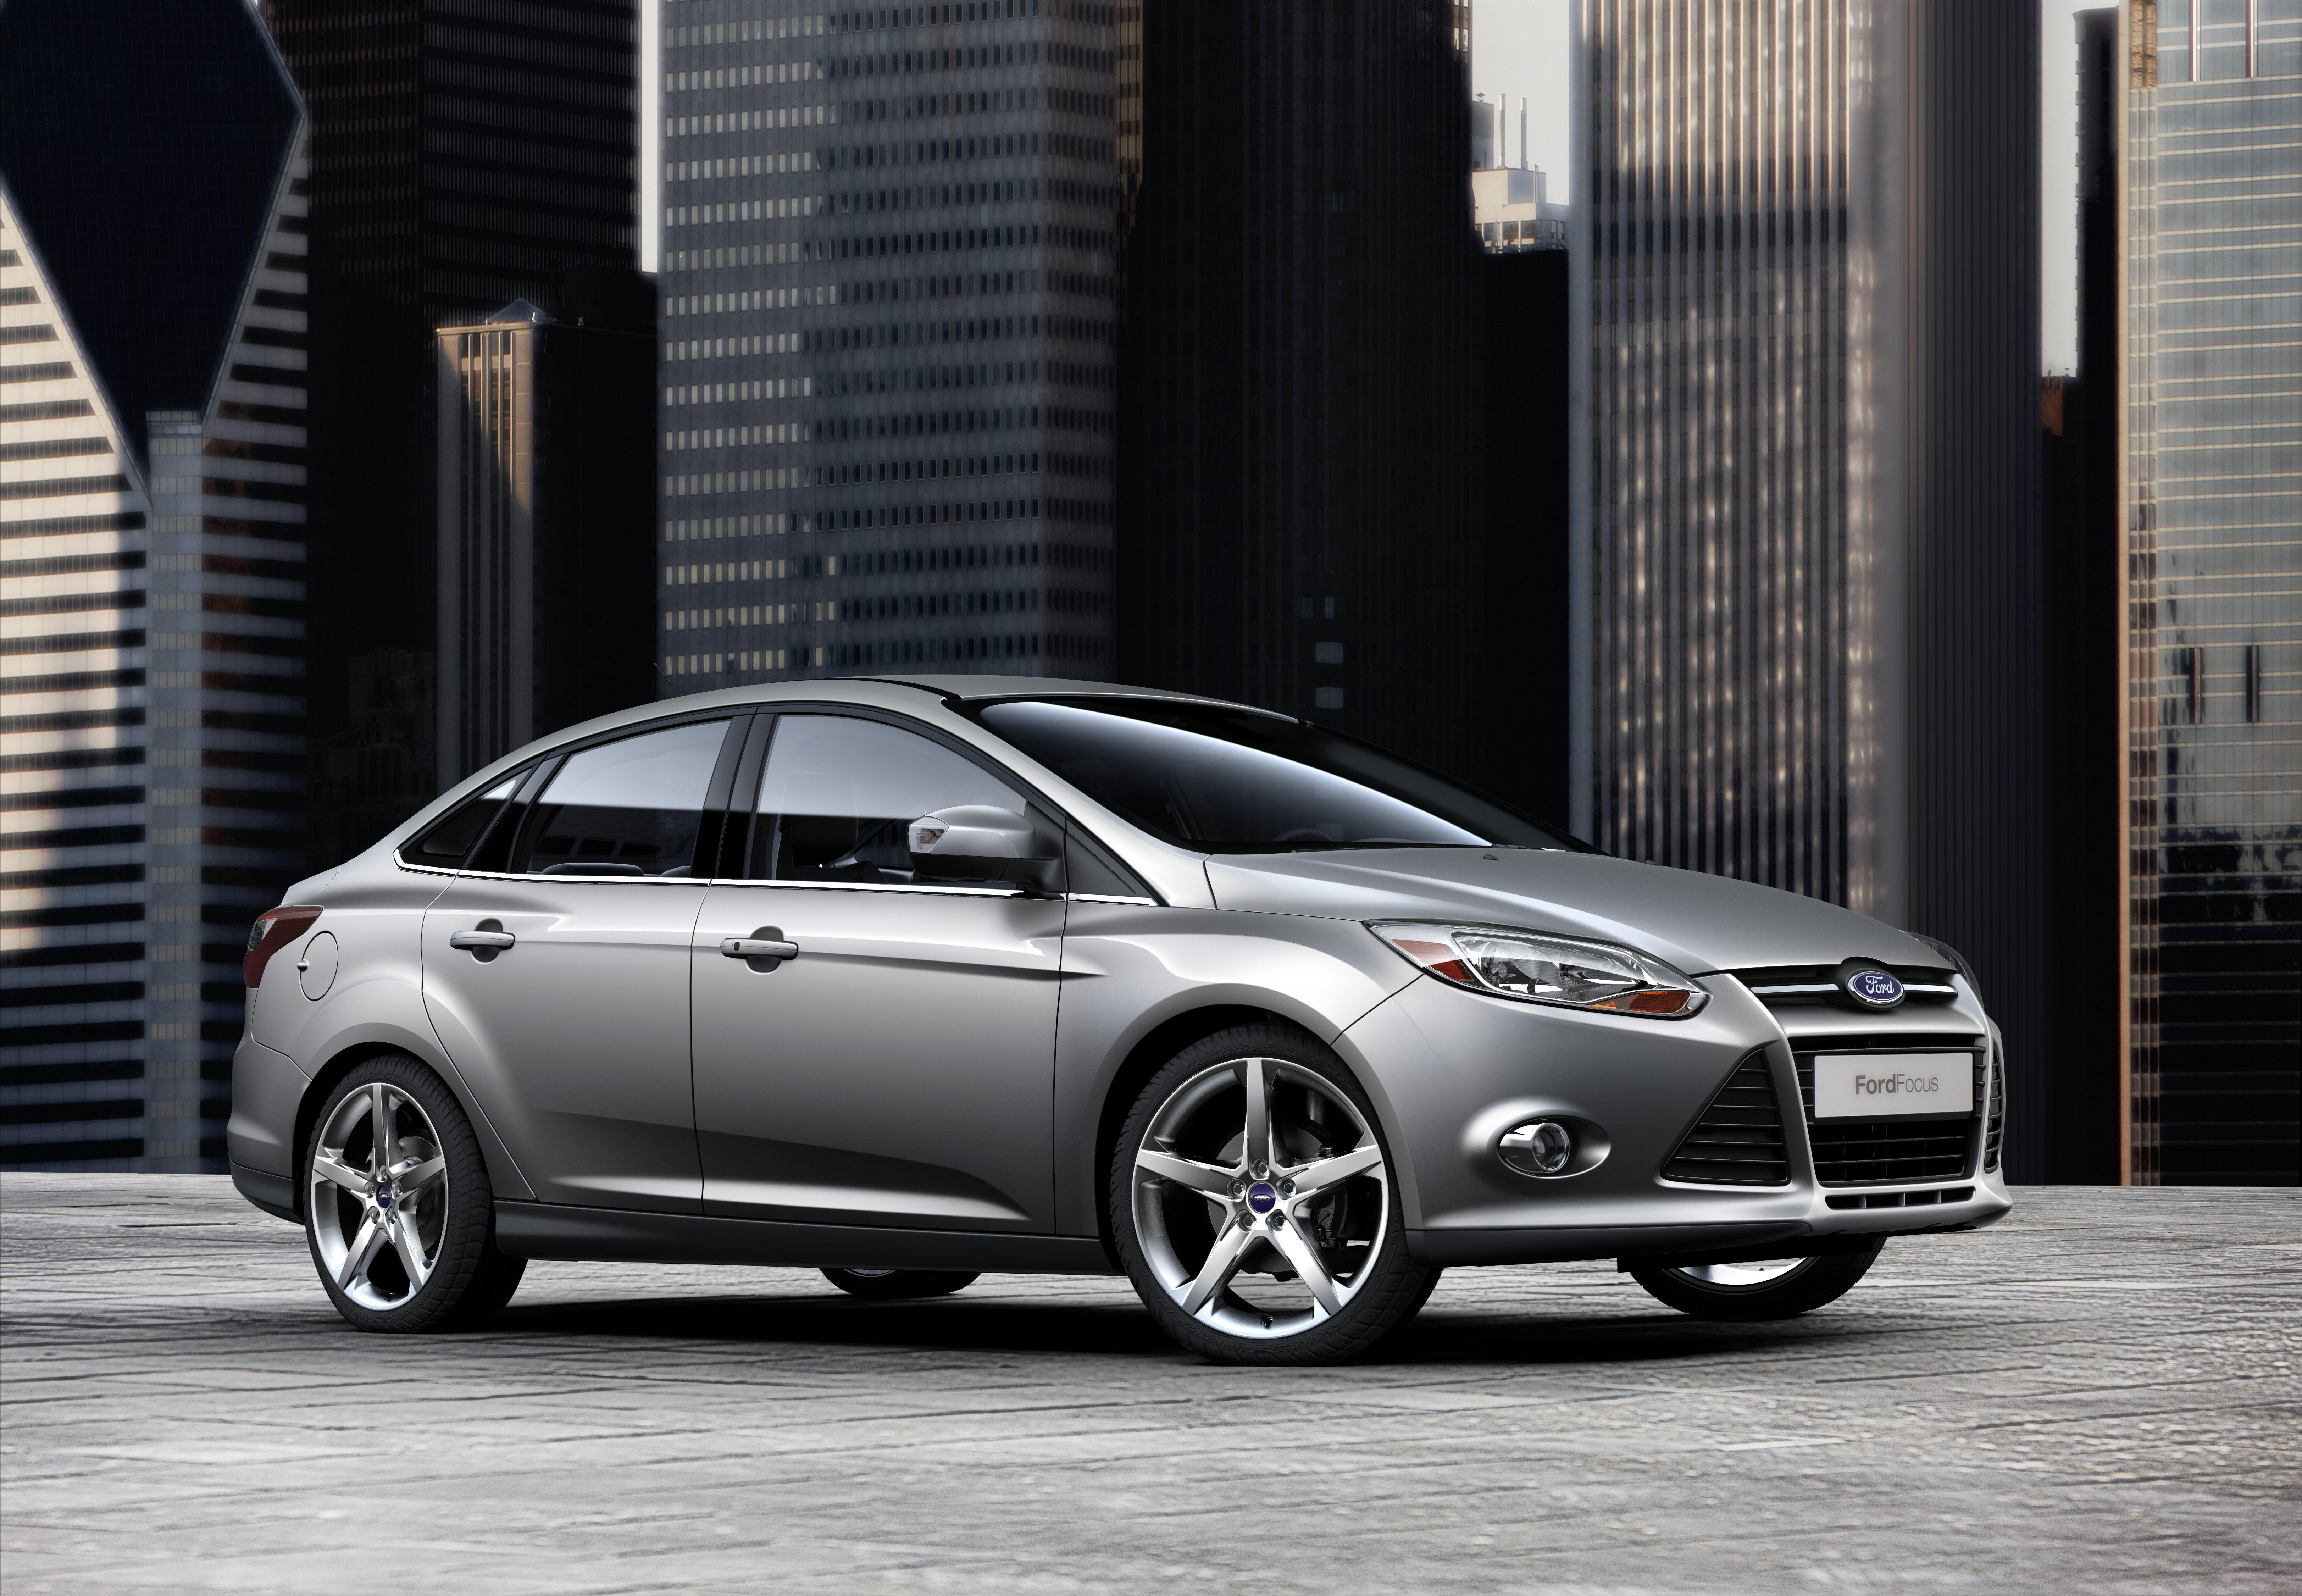 2010 NAIAS Dynamic NextGeneration Ford Focus Debuts in Detroit